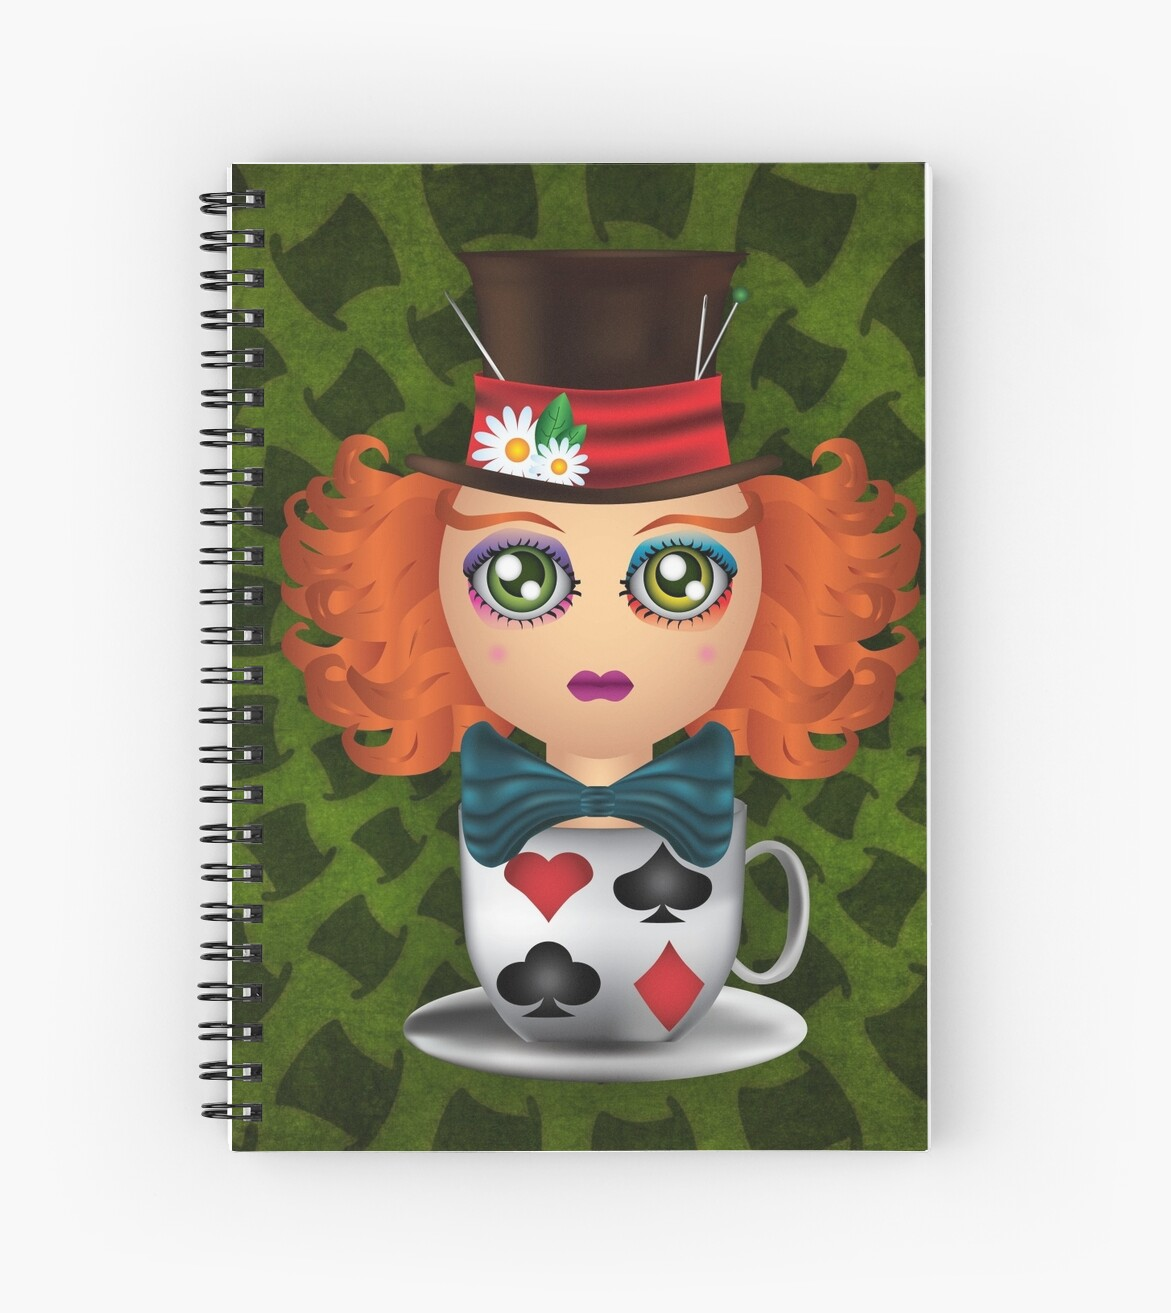 The MadHatter by GayaHovakimyan